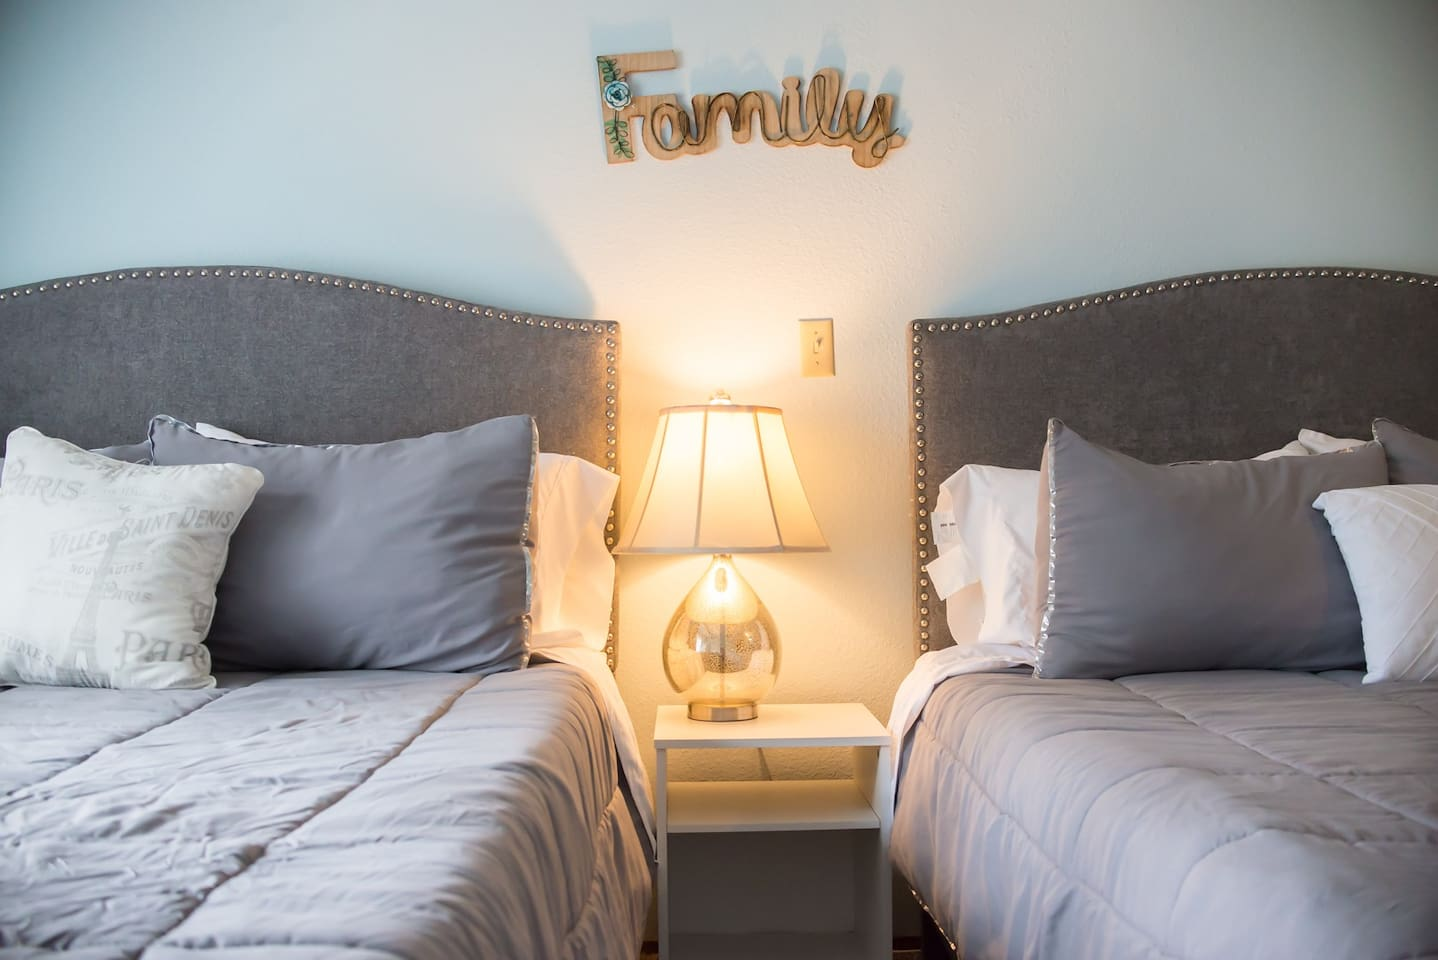 Our beds are all SUPER comfortable- new linens and high thread count sheets guarantee a great night's rest!